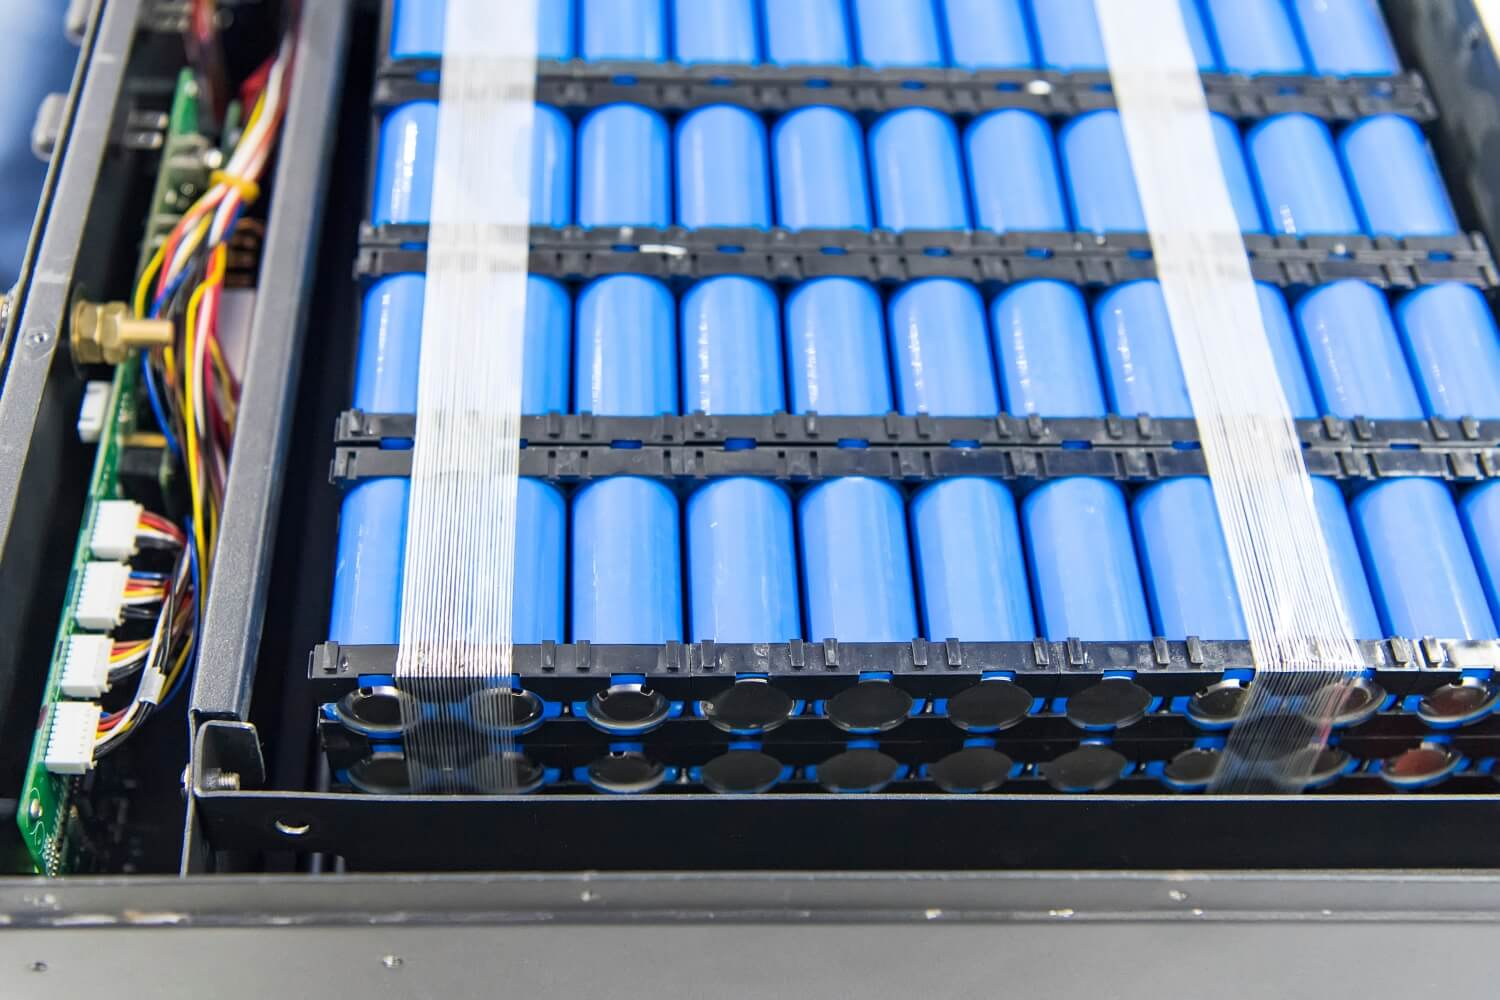 Researchers develop new cathode coating that extends lithium-ion battery life and boosts safety